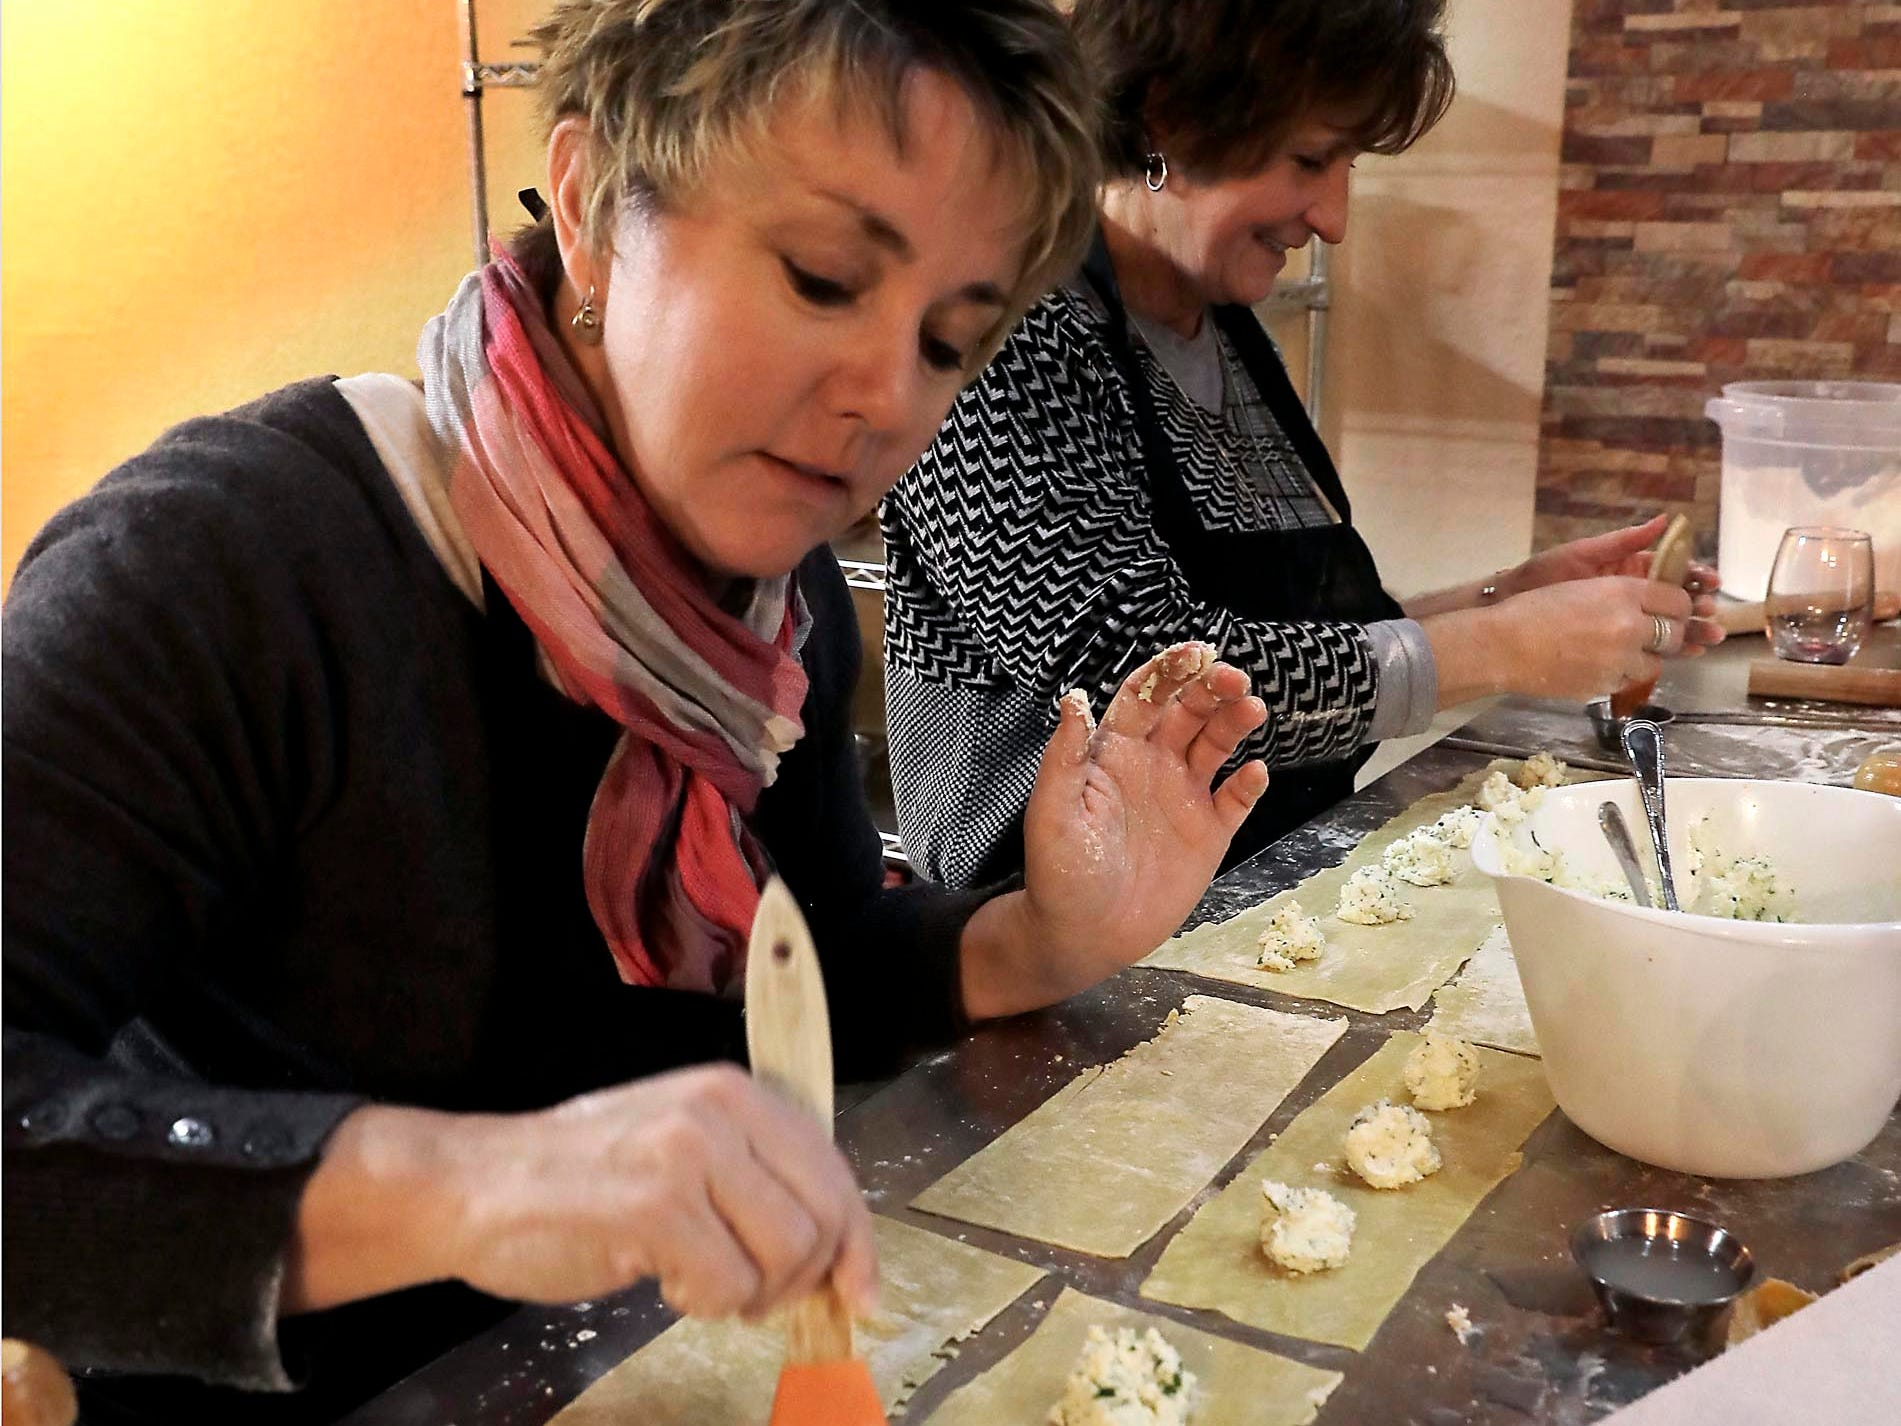 Lori Cieslik brushes water on ravioli dough before placing a second layer of dough on top.